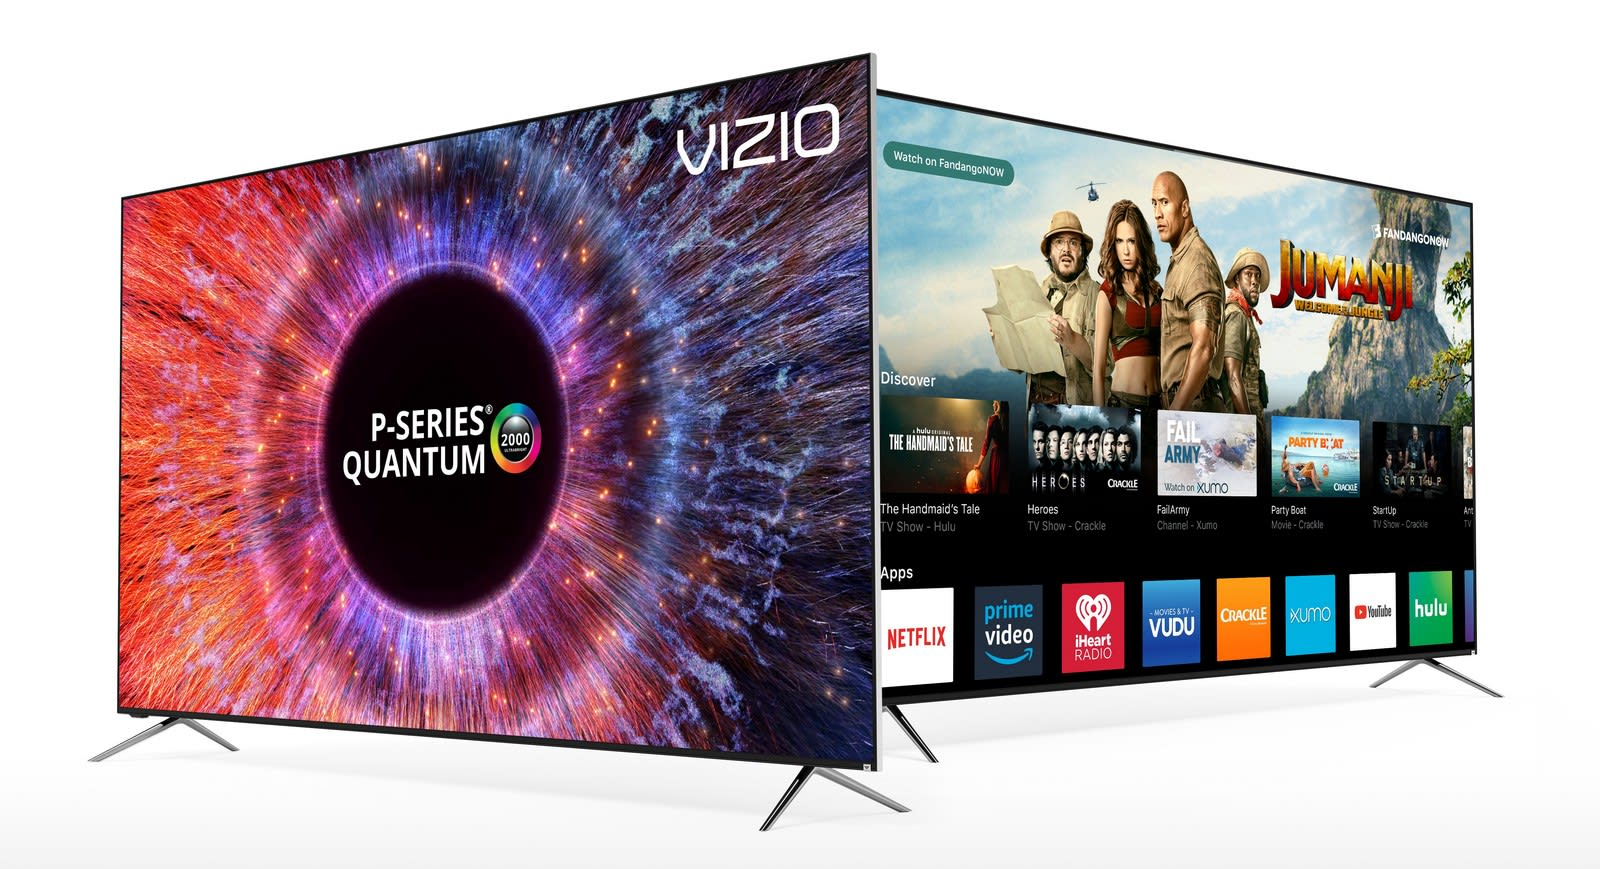 The real star of Vizio's 2018 TV lineup is value